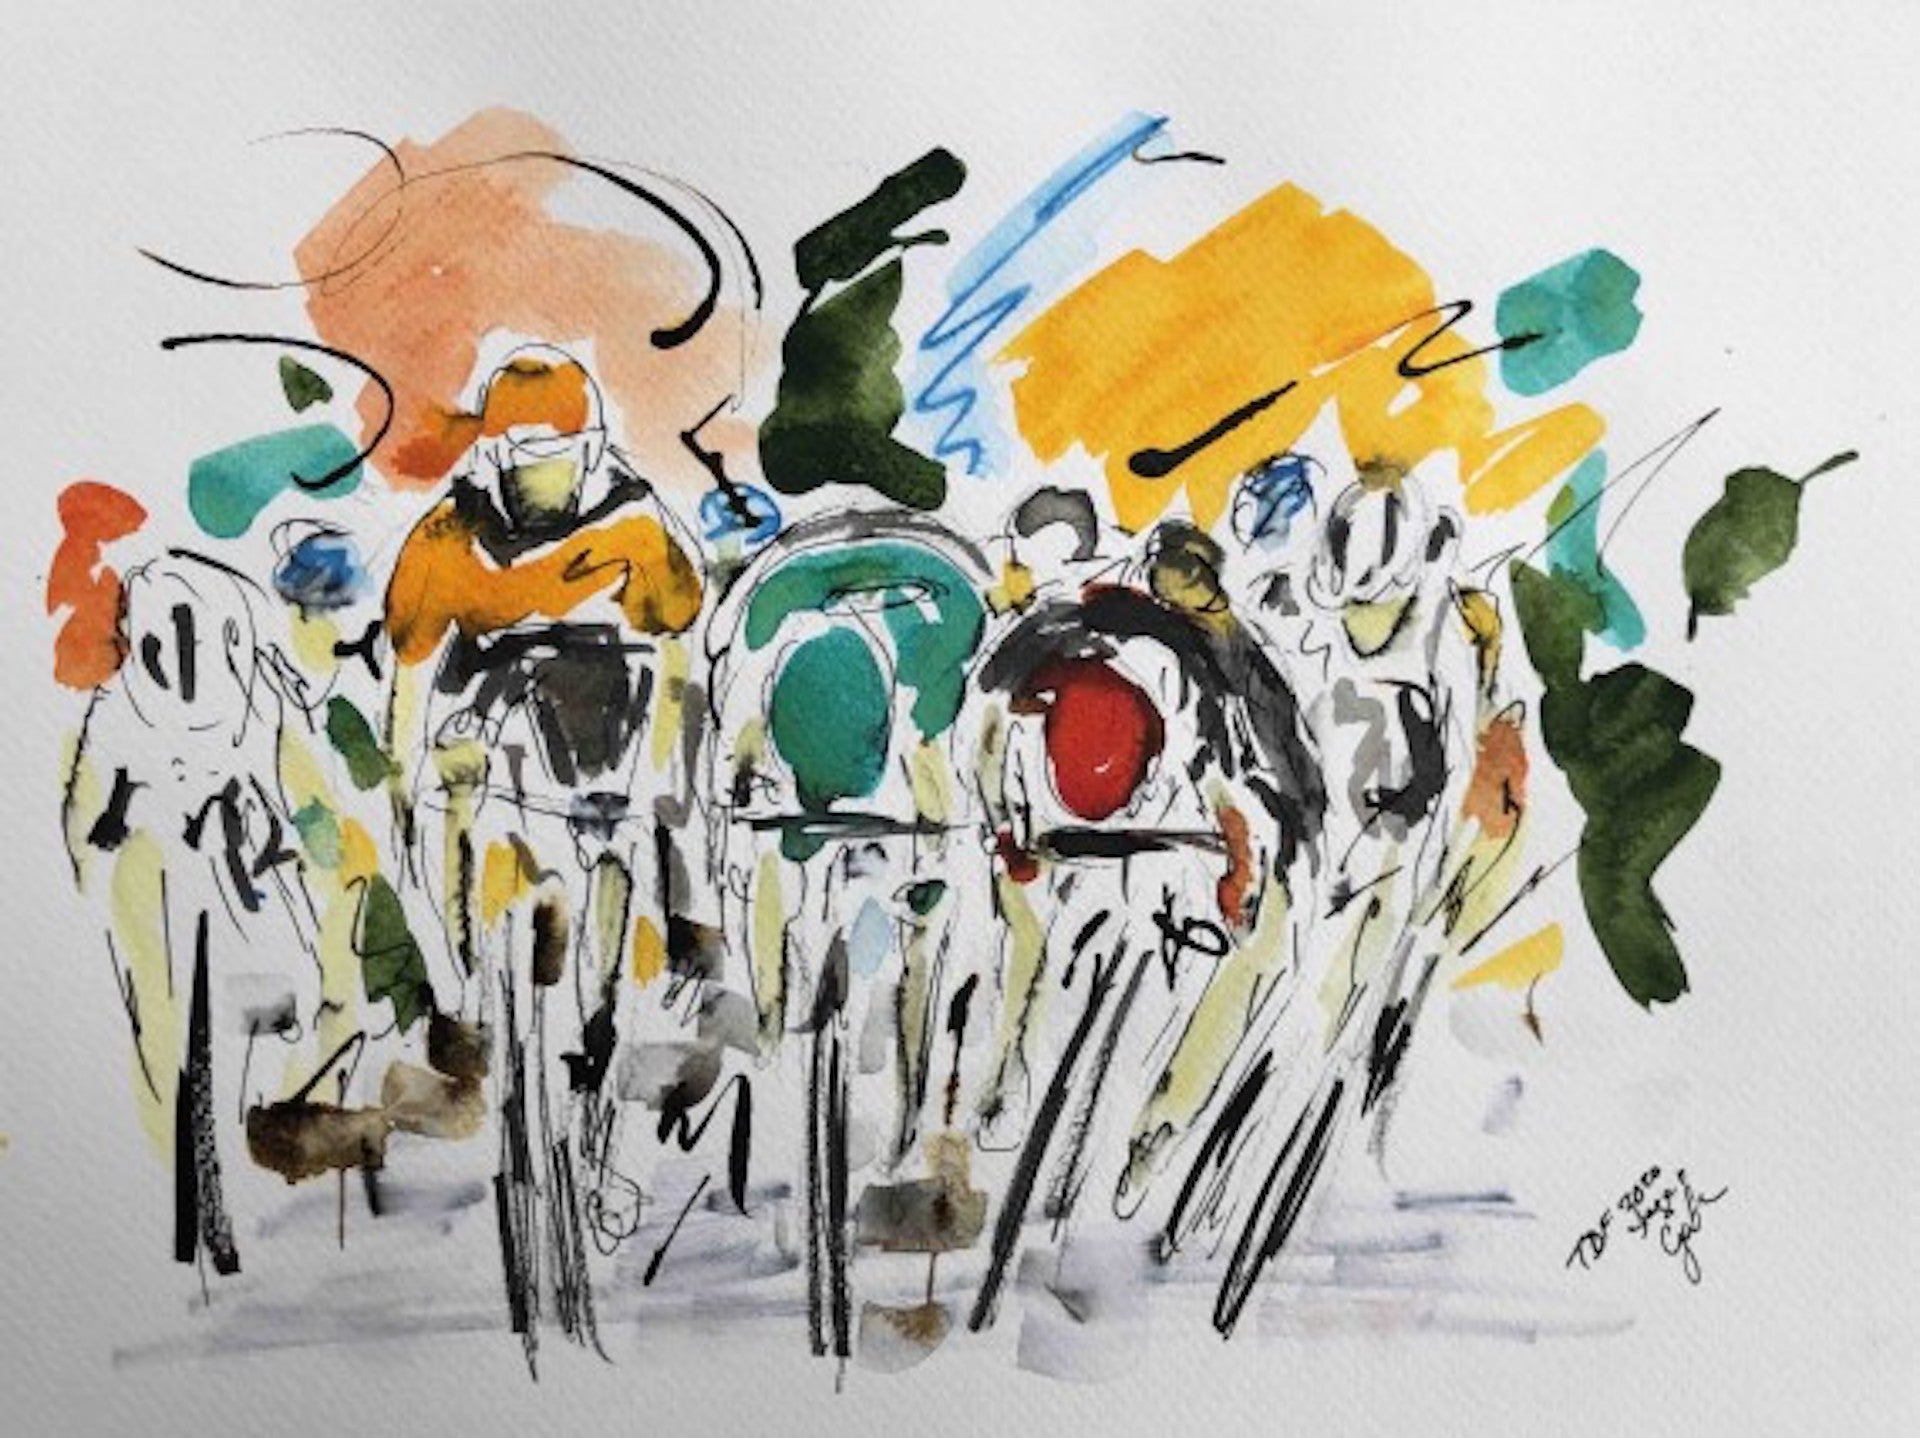 Garth Bayley, Tour de France Stage Eleven 2020, Bicycle Racing Art, Art Online